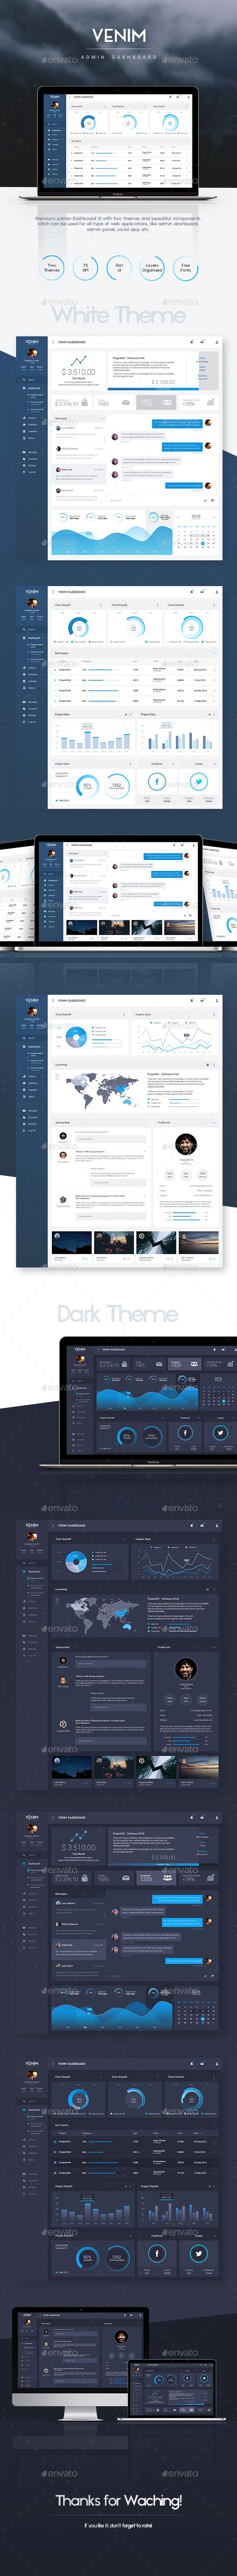 Admin Dashboard UI Template (User Interfaces)